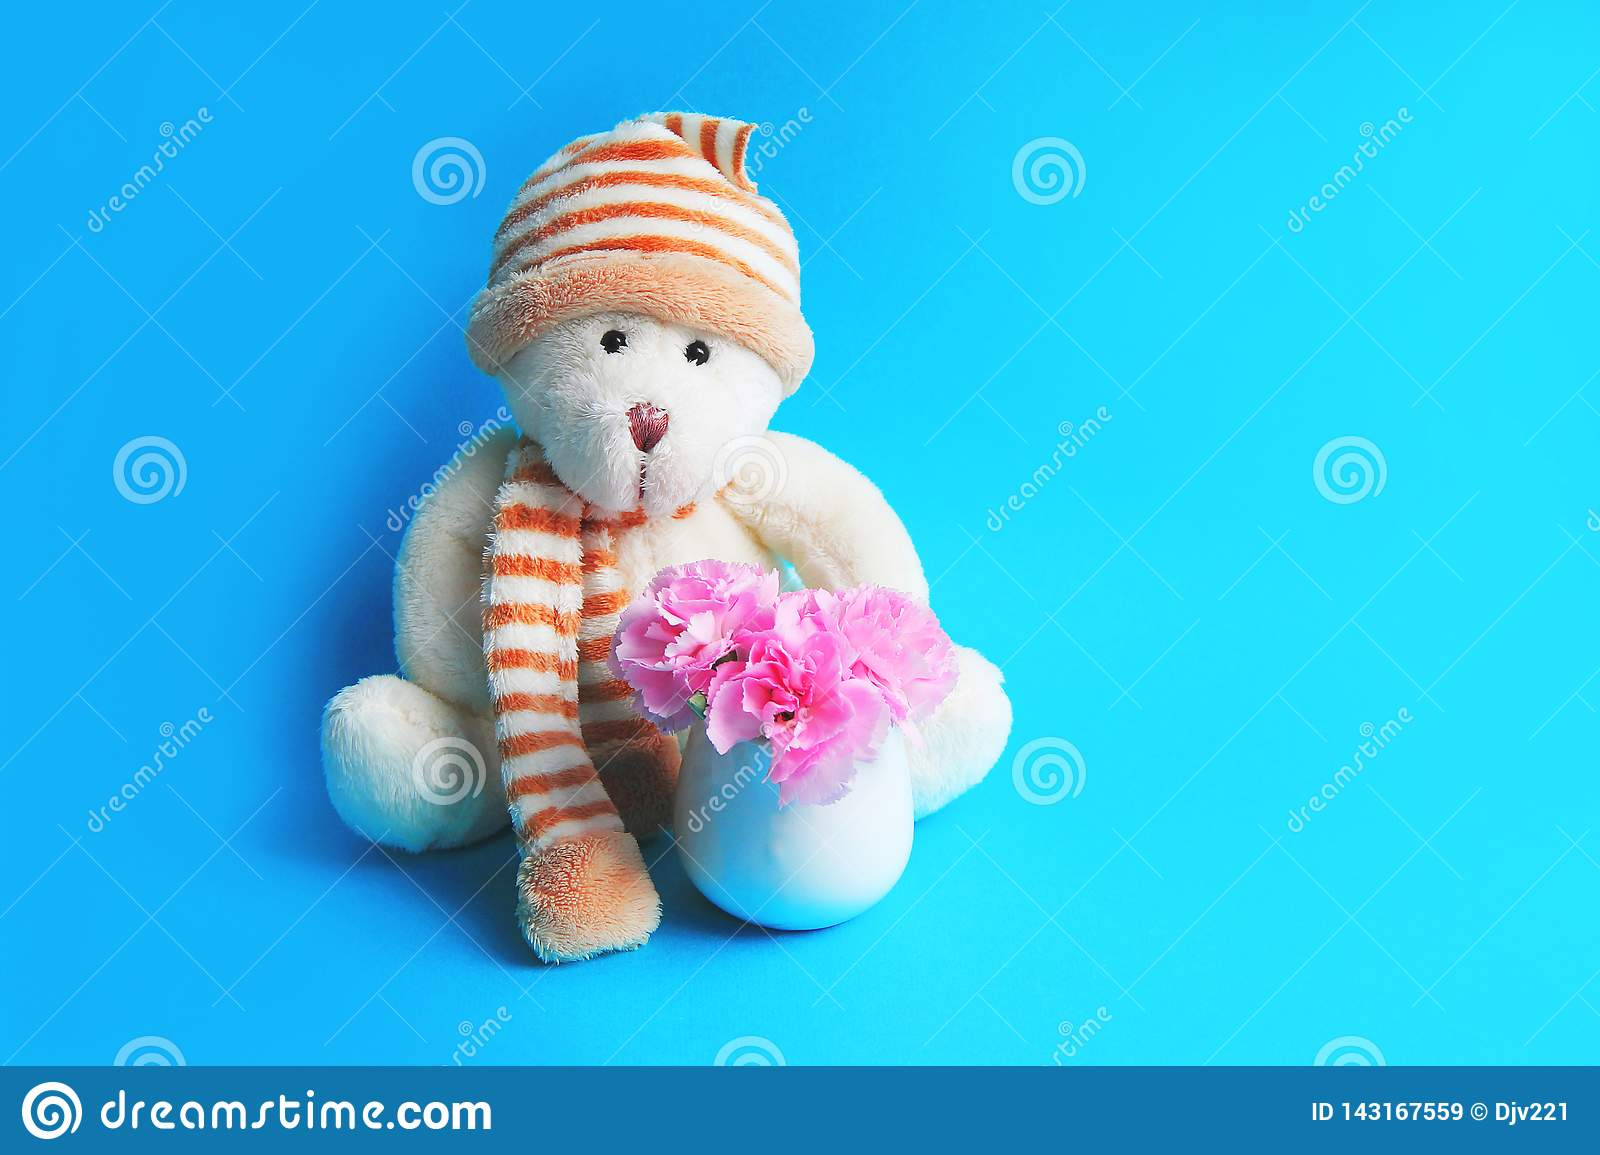 Teddy bear in a hat and balls next to a bouquet of pink carnations